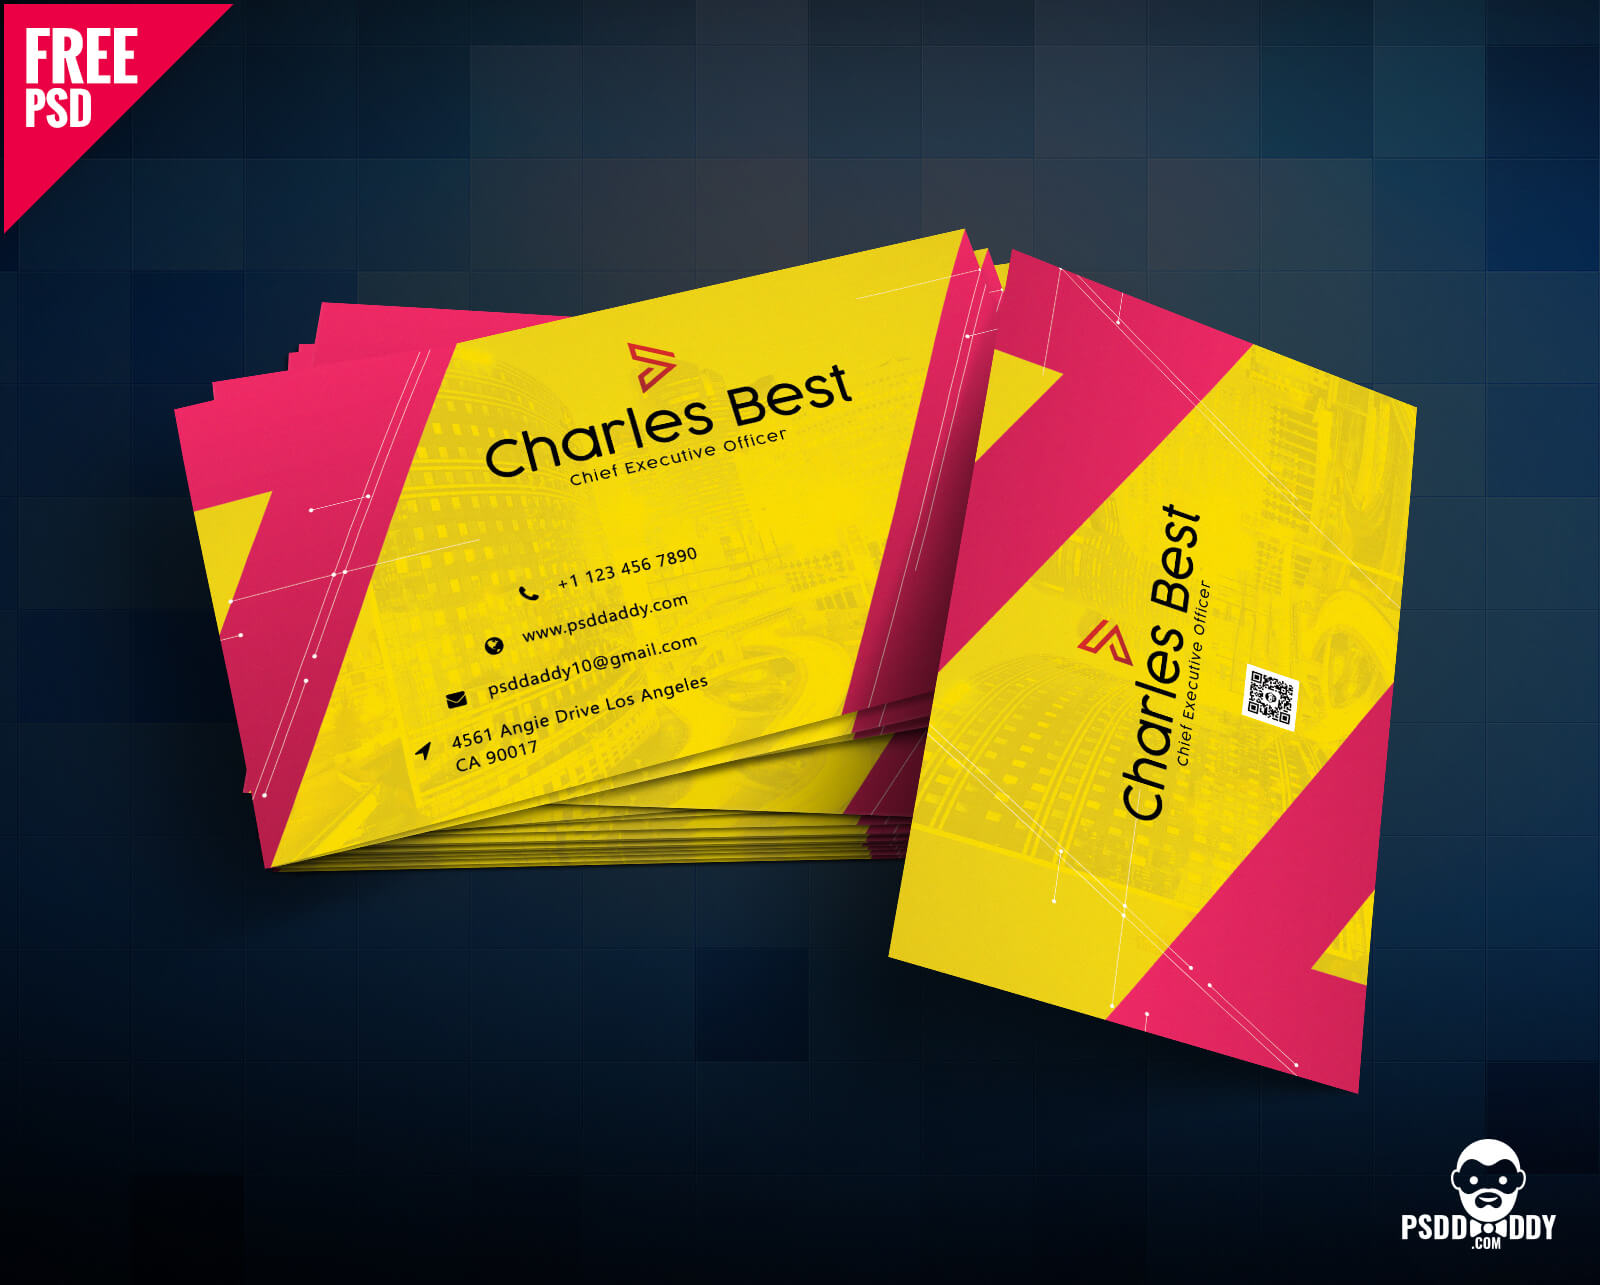 Download] Creative Business Card Free Psd | Psddaddy Throughout Business Card Size Photoshop Template